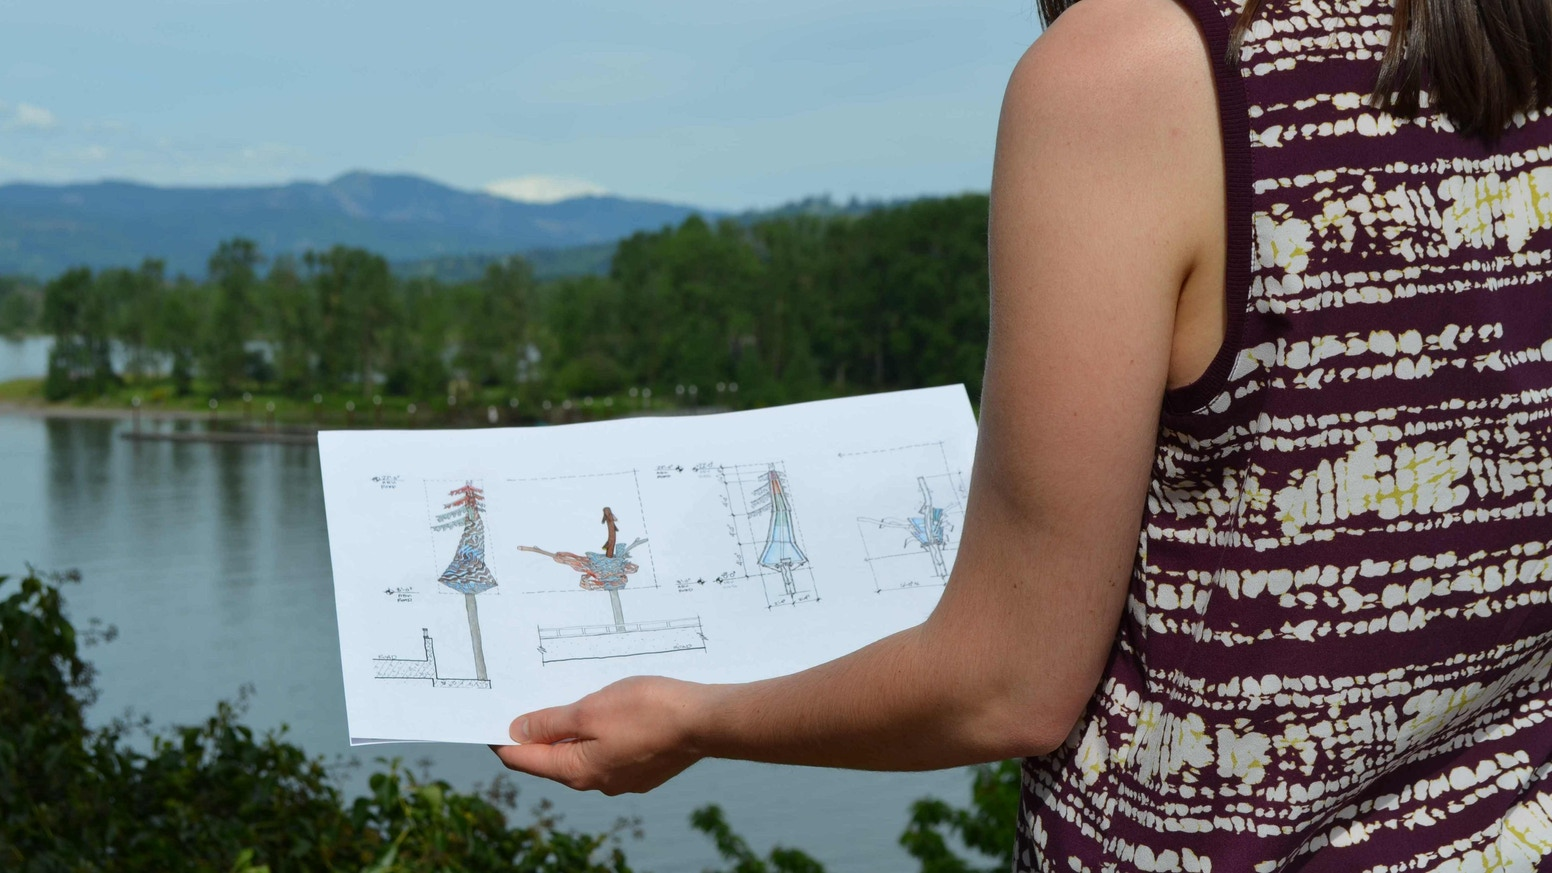 A sculpture project that will mark the southern entrance to St. Helens, Oregon by creating a unique cultural landmark for the community